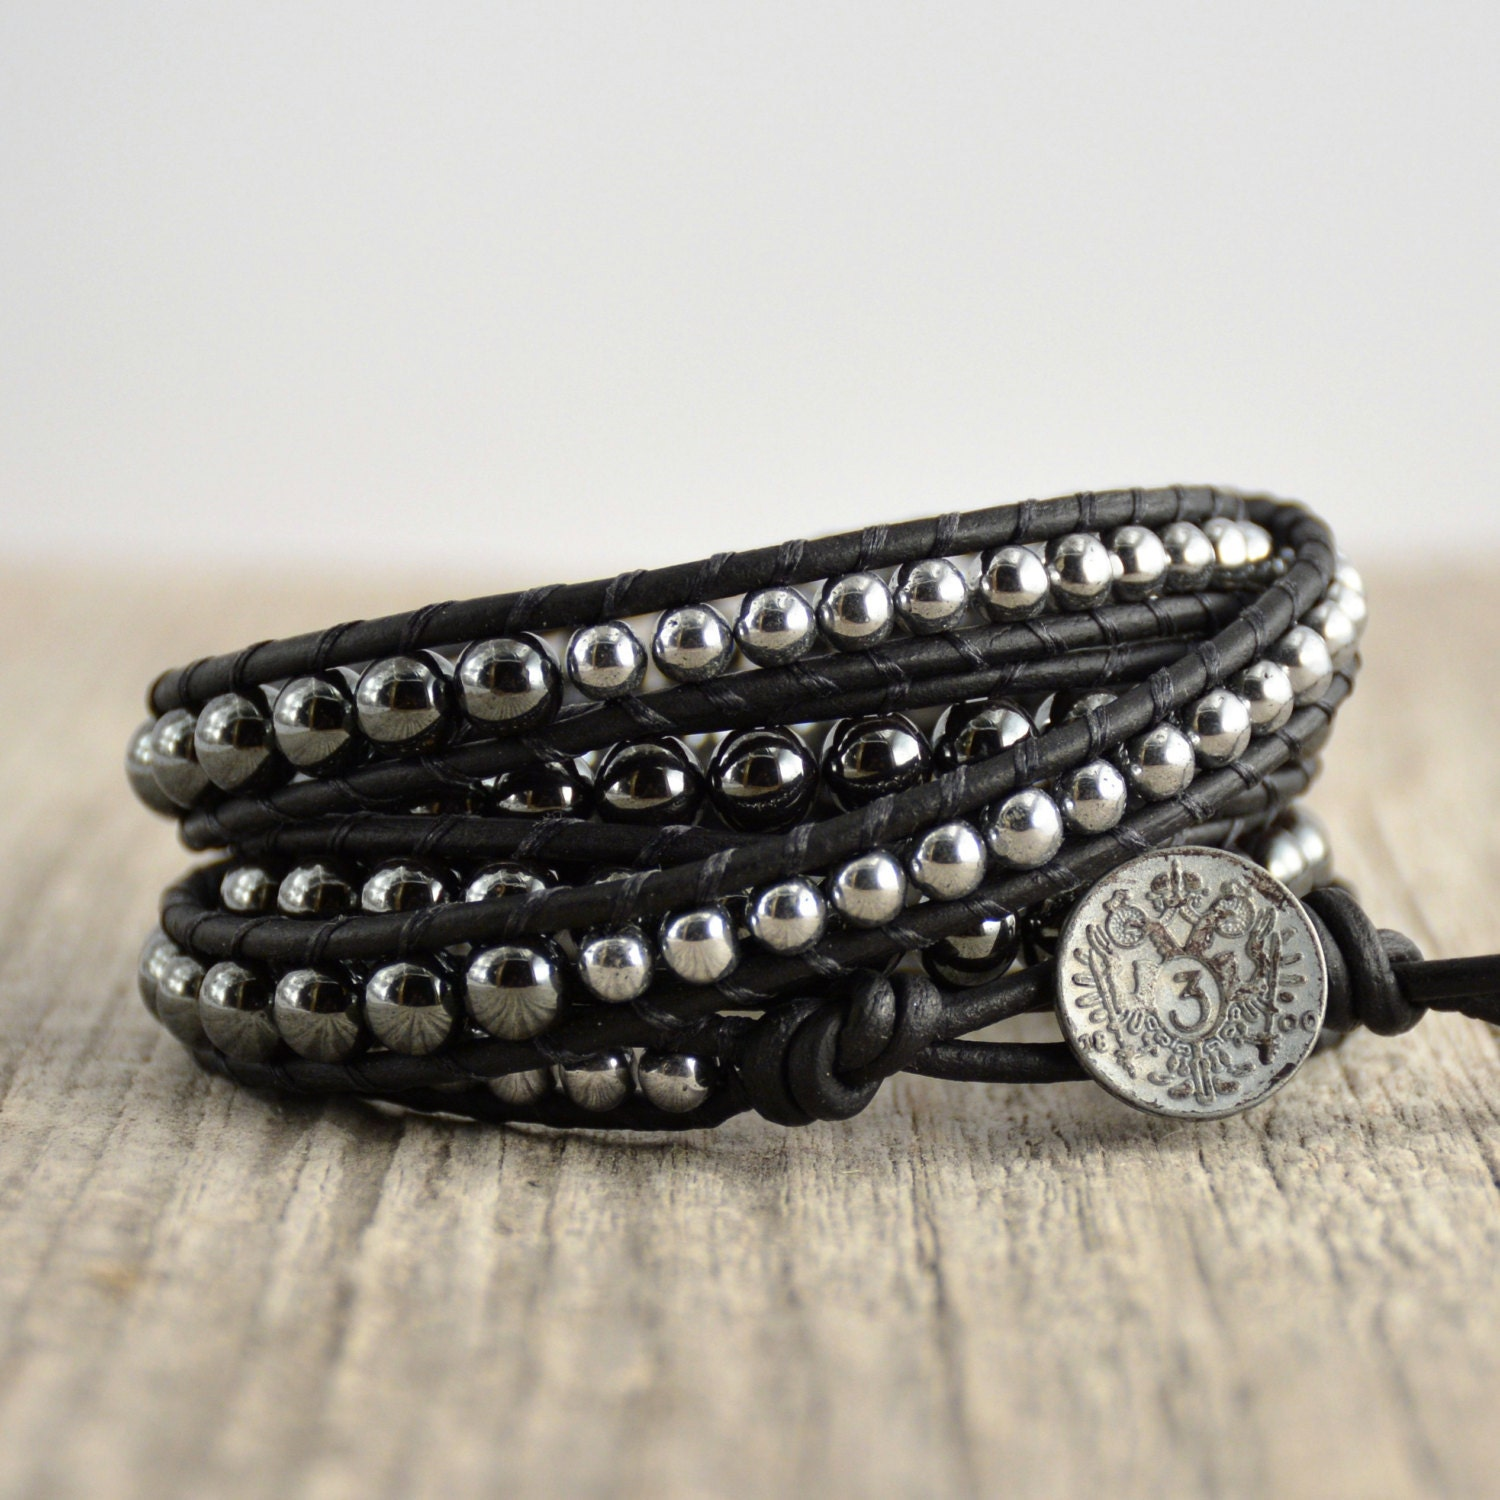 Urban Chic Rocker Jewelry. Five Wrap Silver And Black Hematite